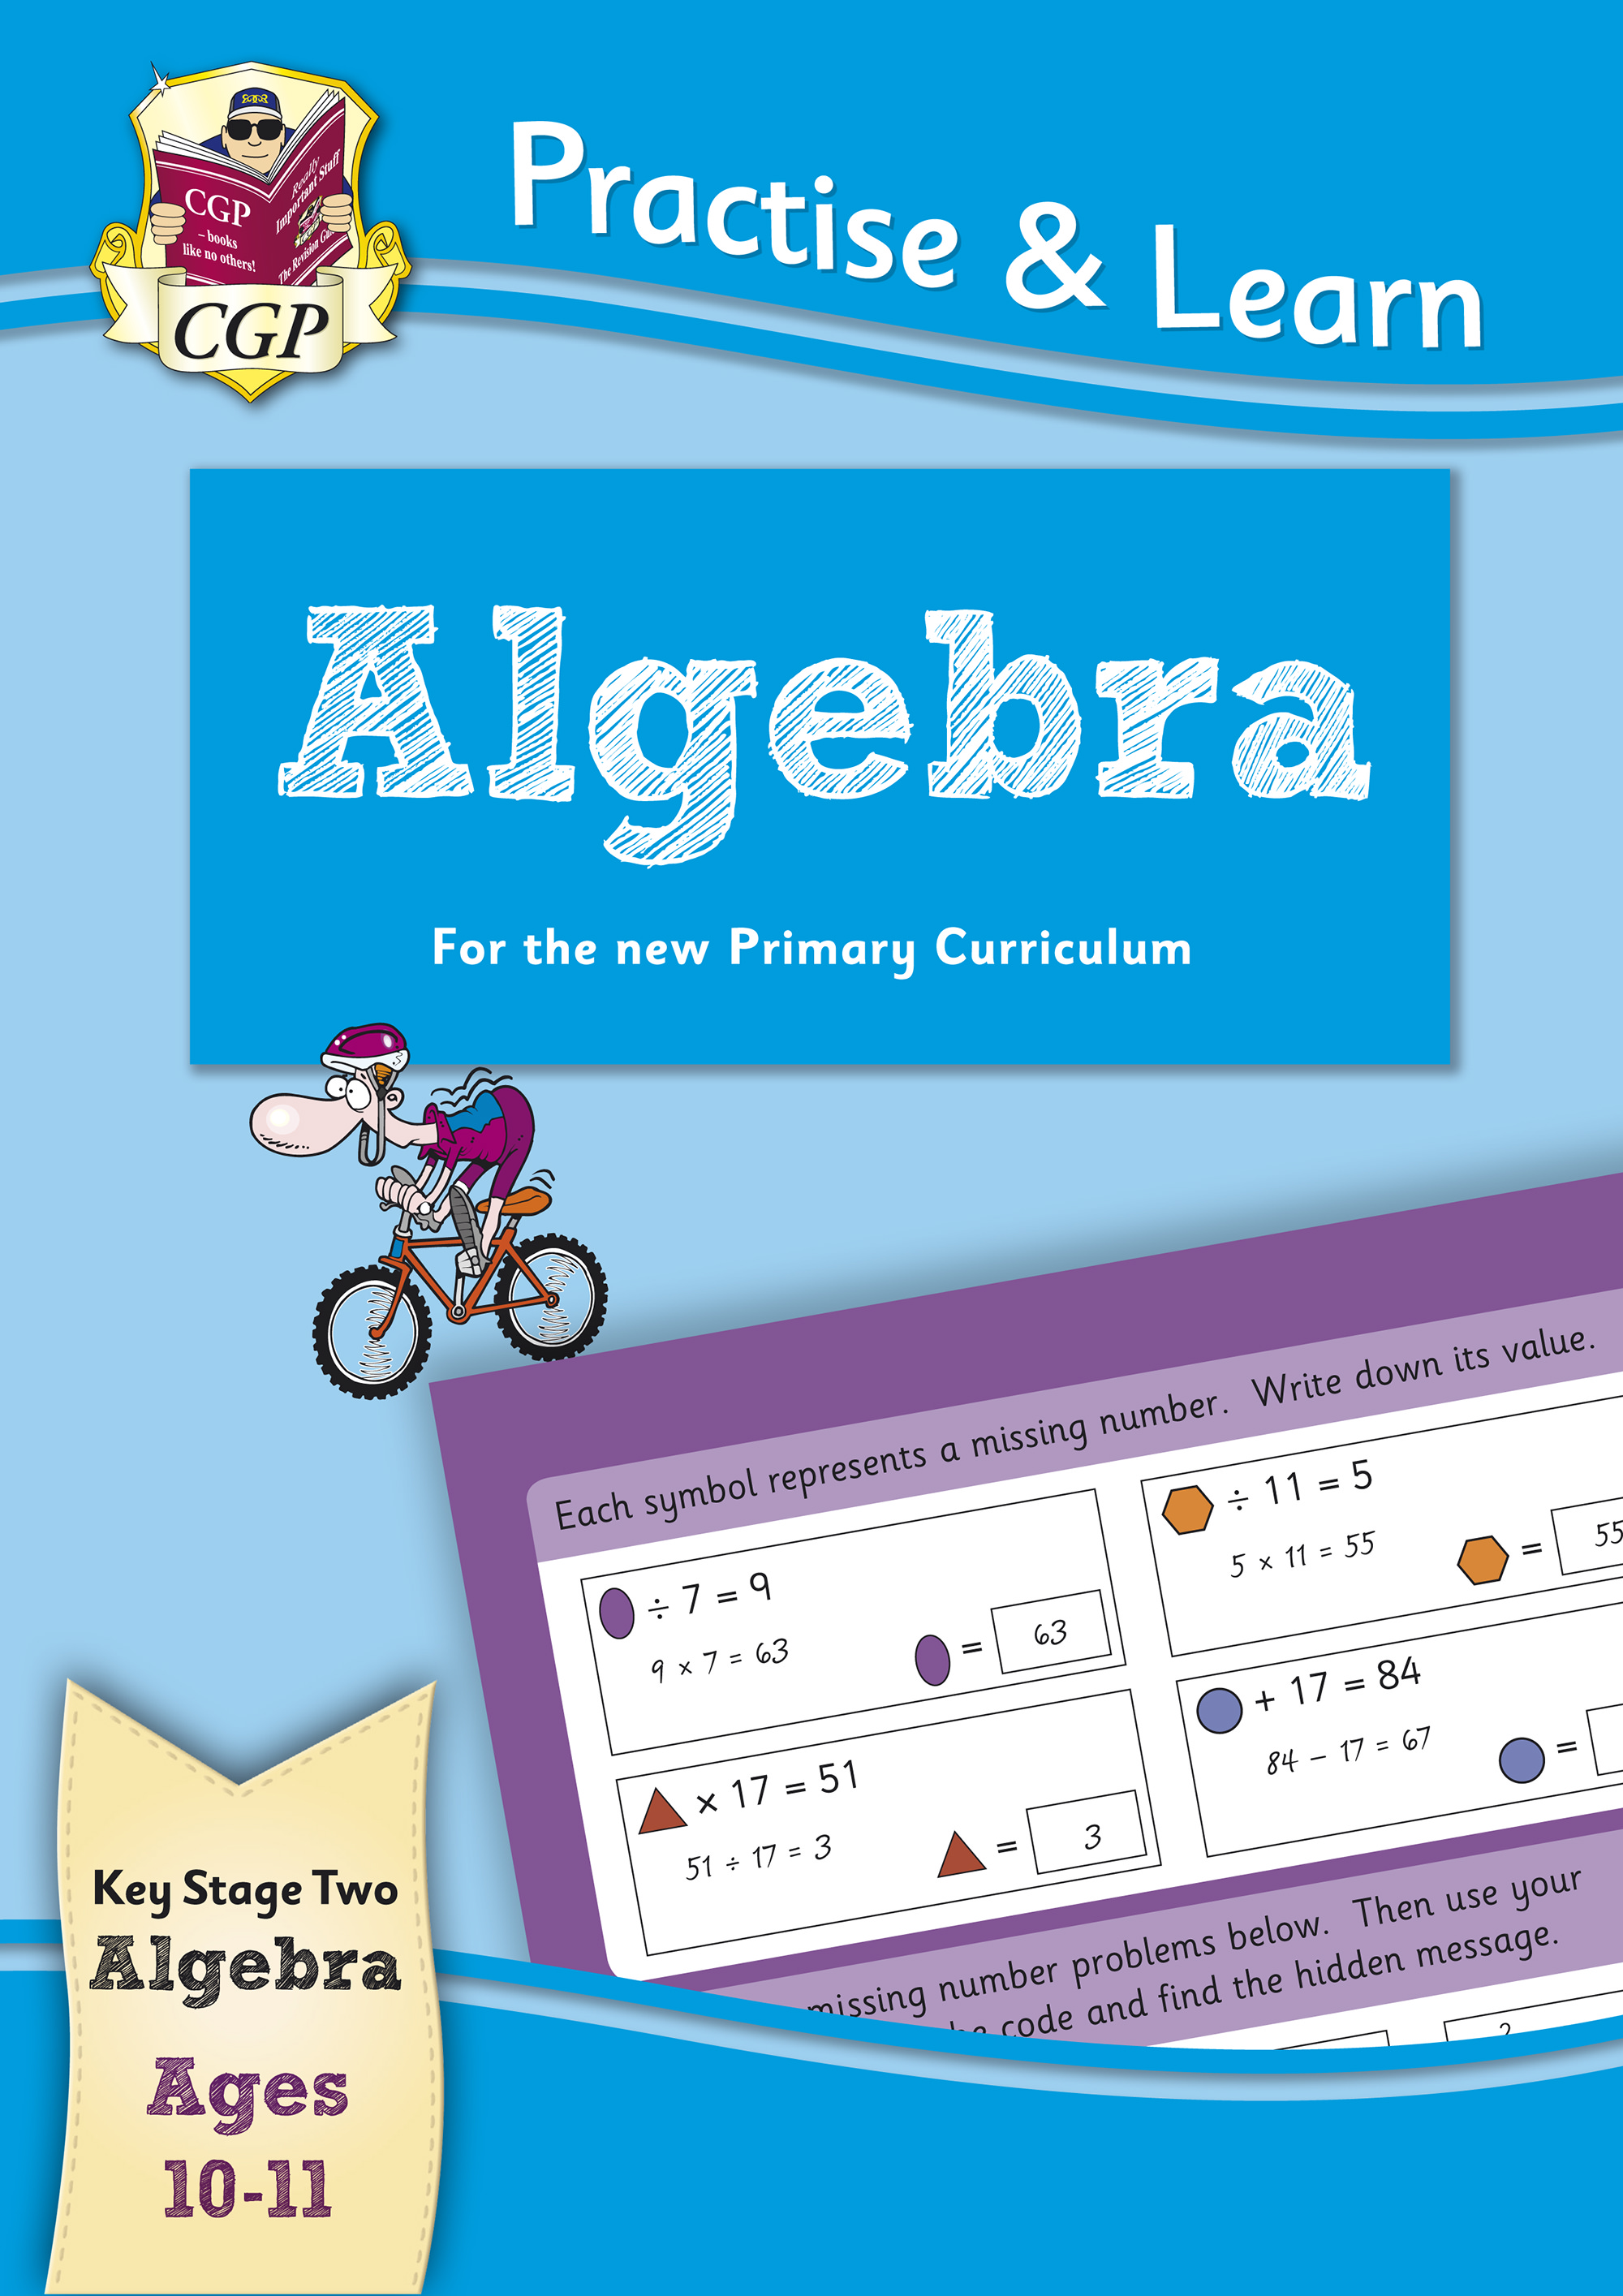 MP6AL22 - New Curriculum Practise & Learn: Algebra for Ages 10-11